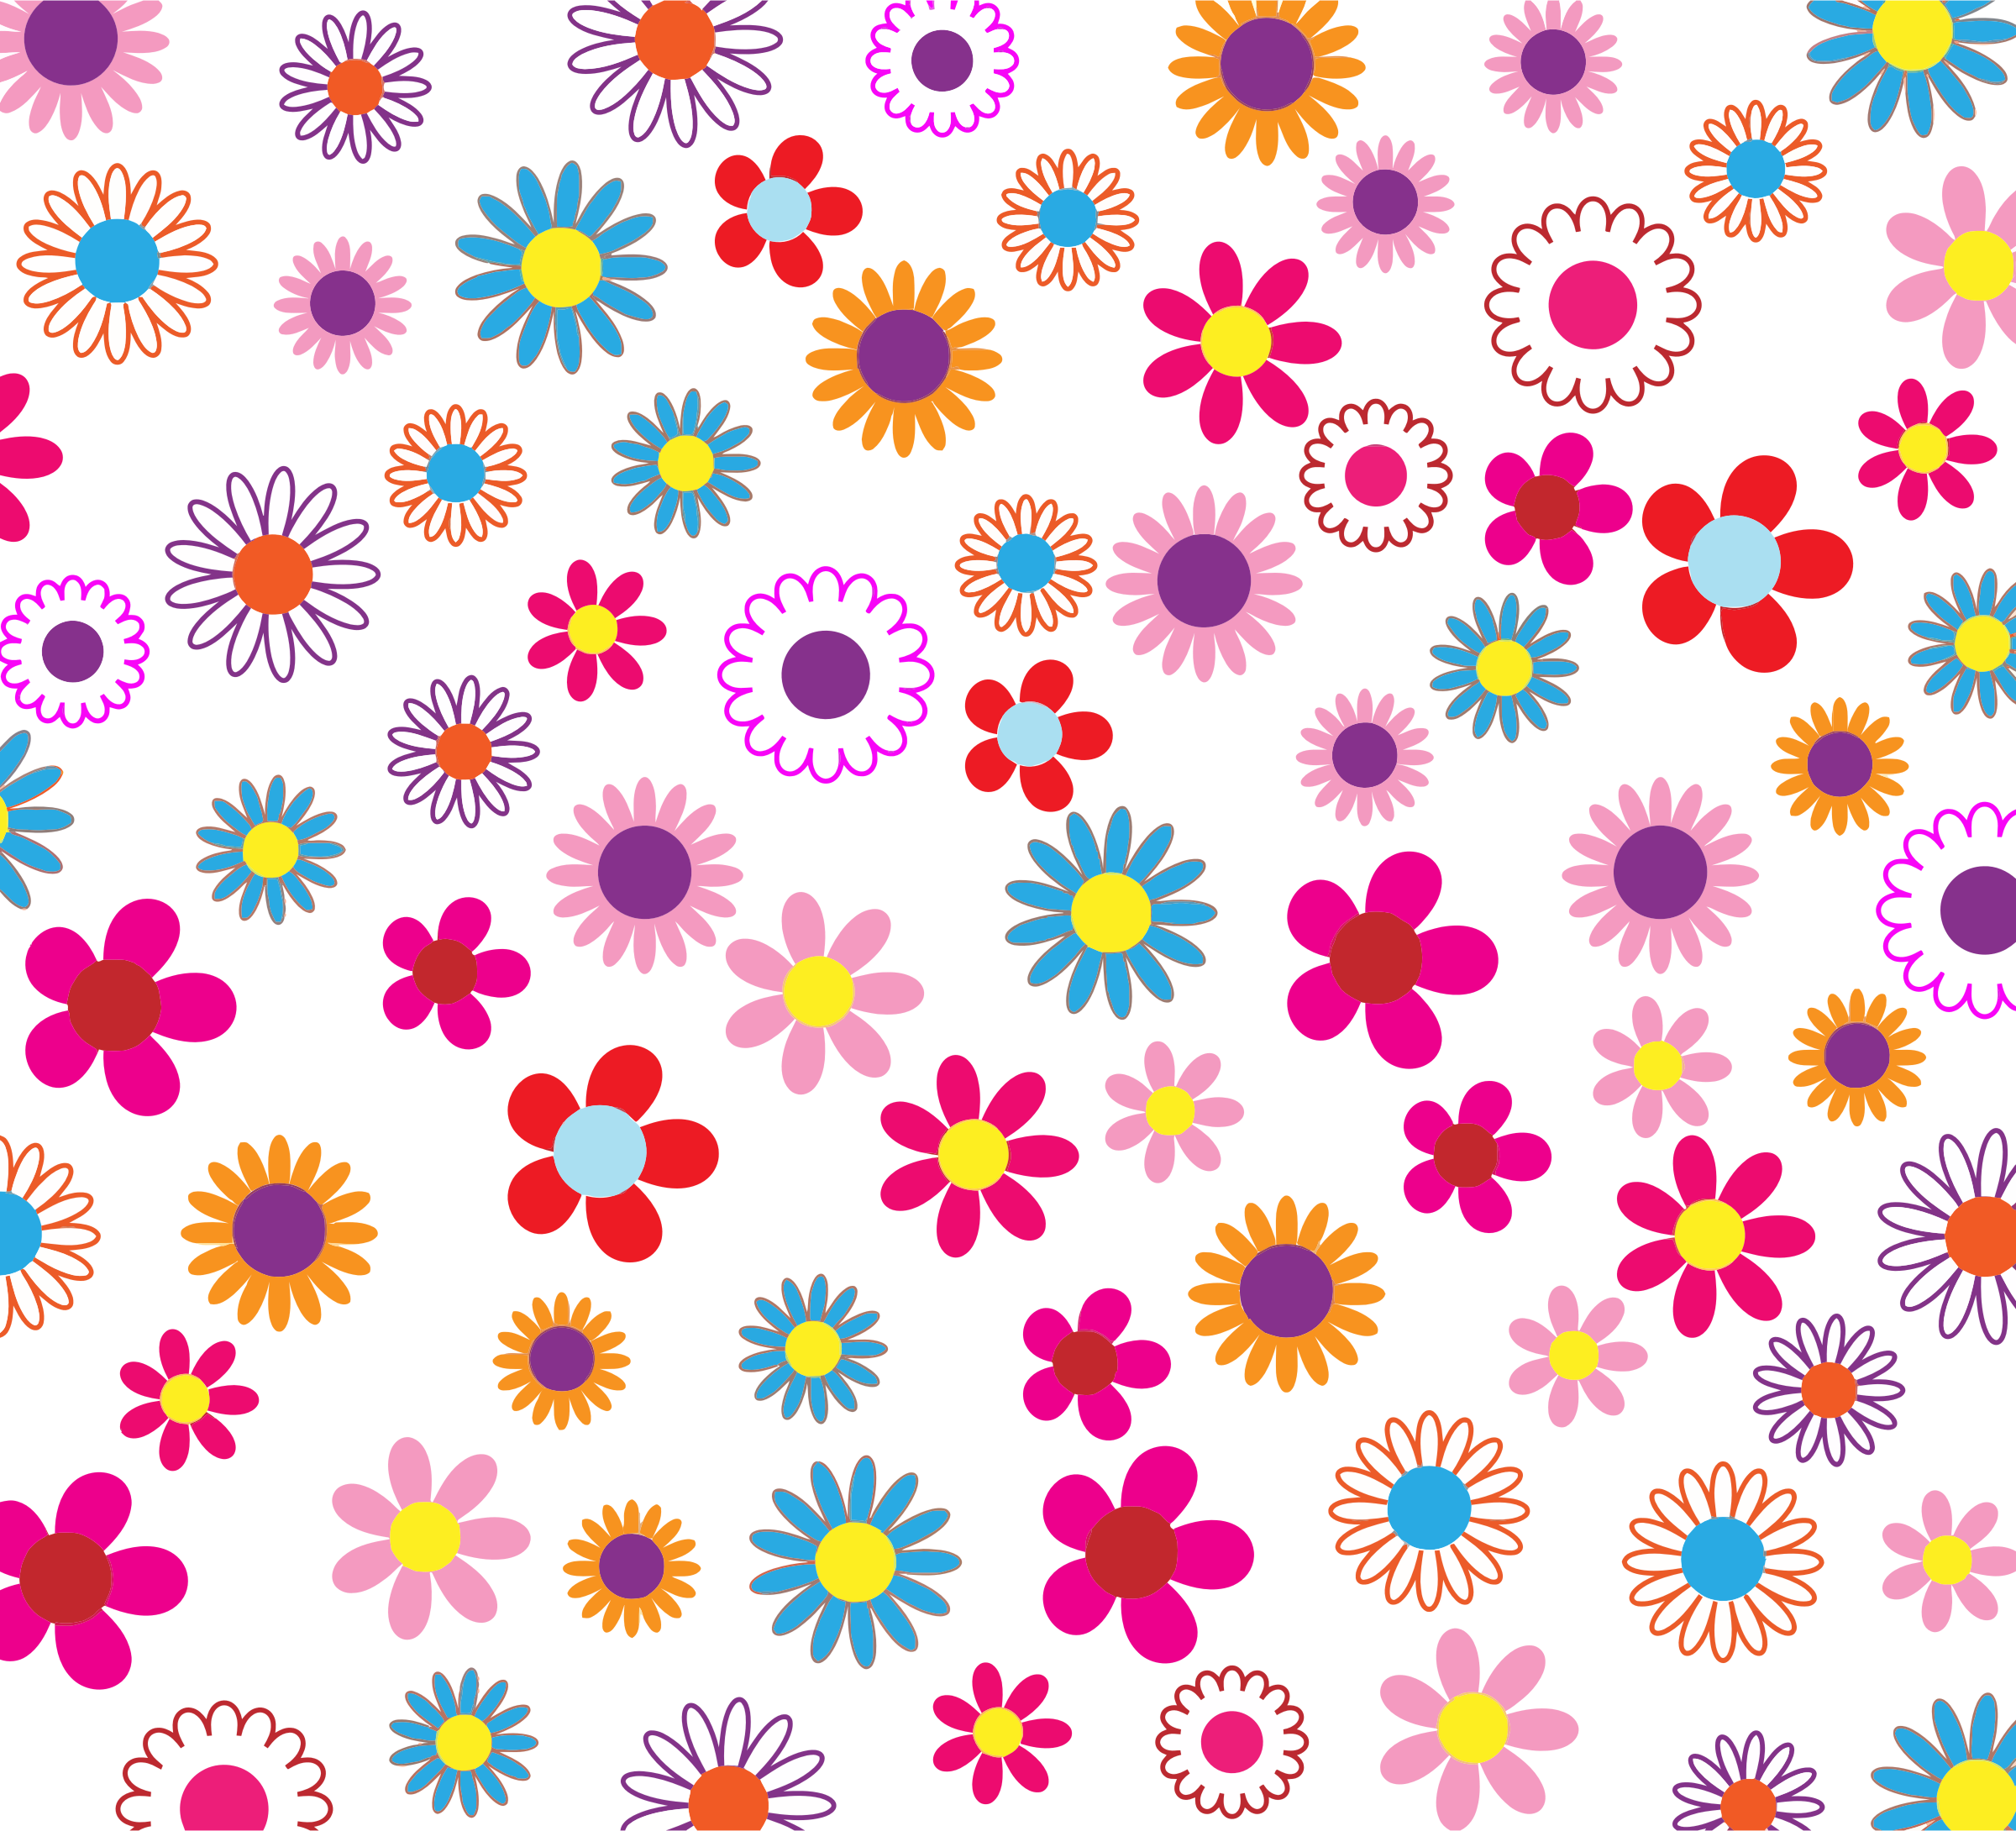 Patterned apple clipart royalty free stock Colorful Floral Pattern Background by @GDJ, PDP, on @openclipart ... royalty free stock